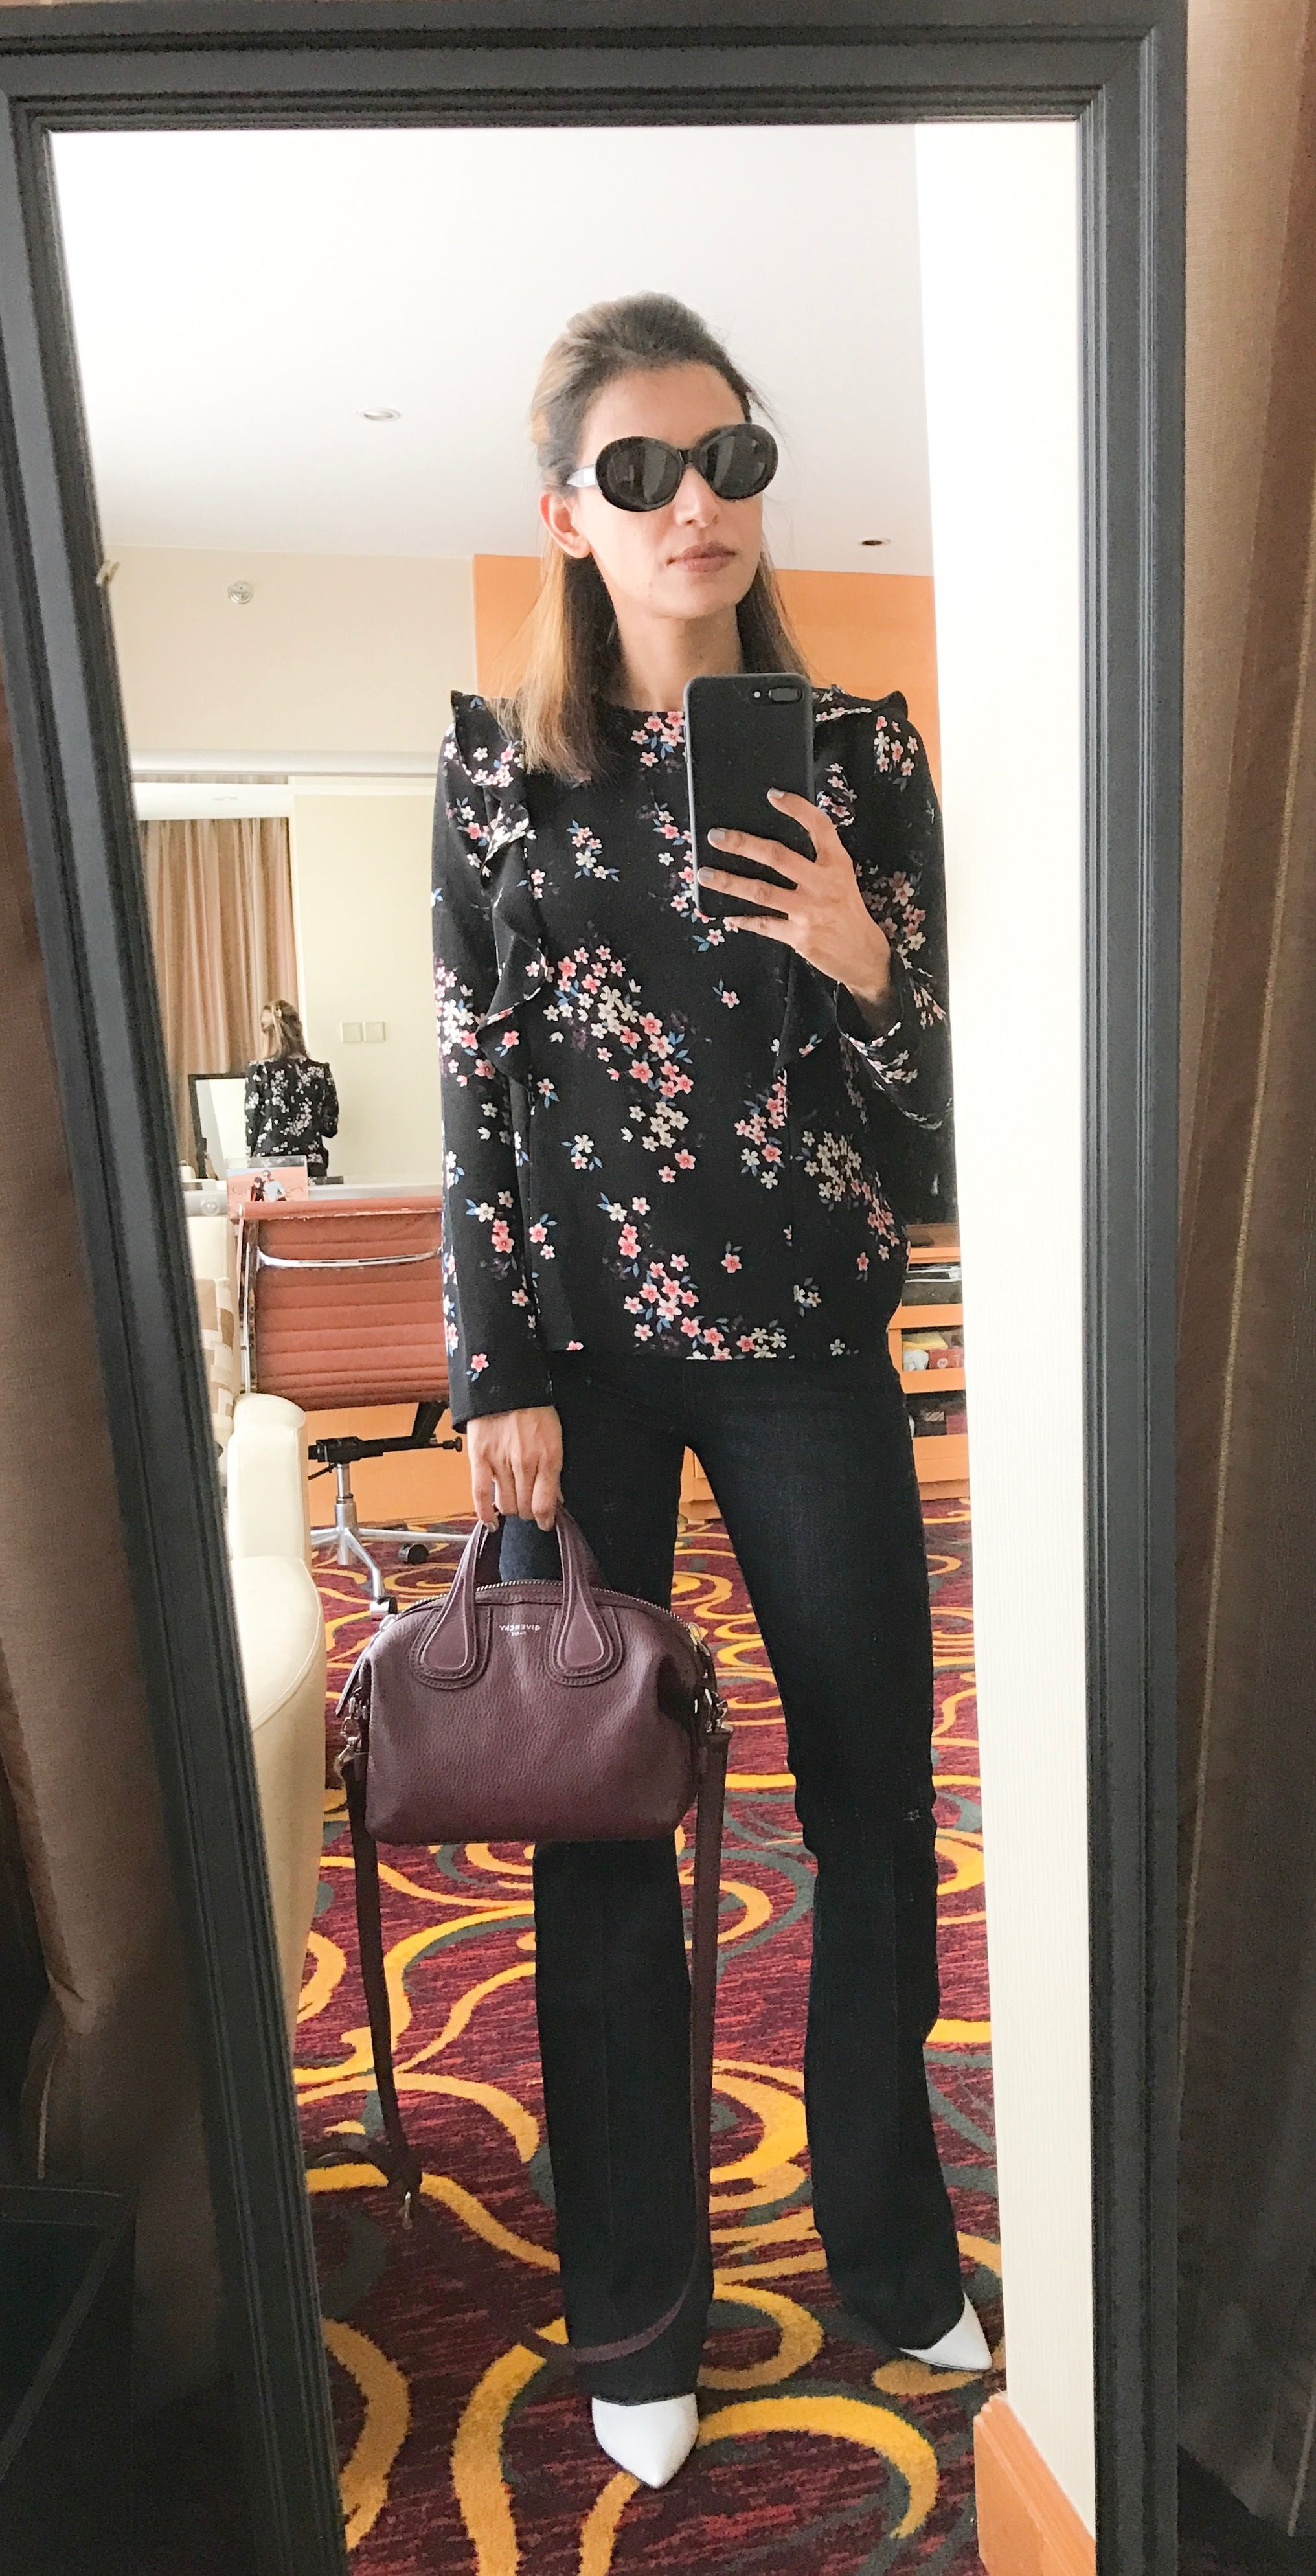 Givenchy Micro nightingale bag outfit with flare jeans and grill top style 900a5ee2c2f9c